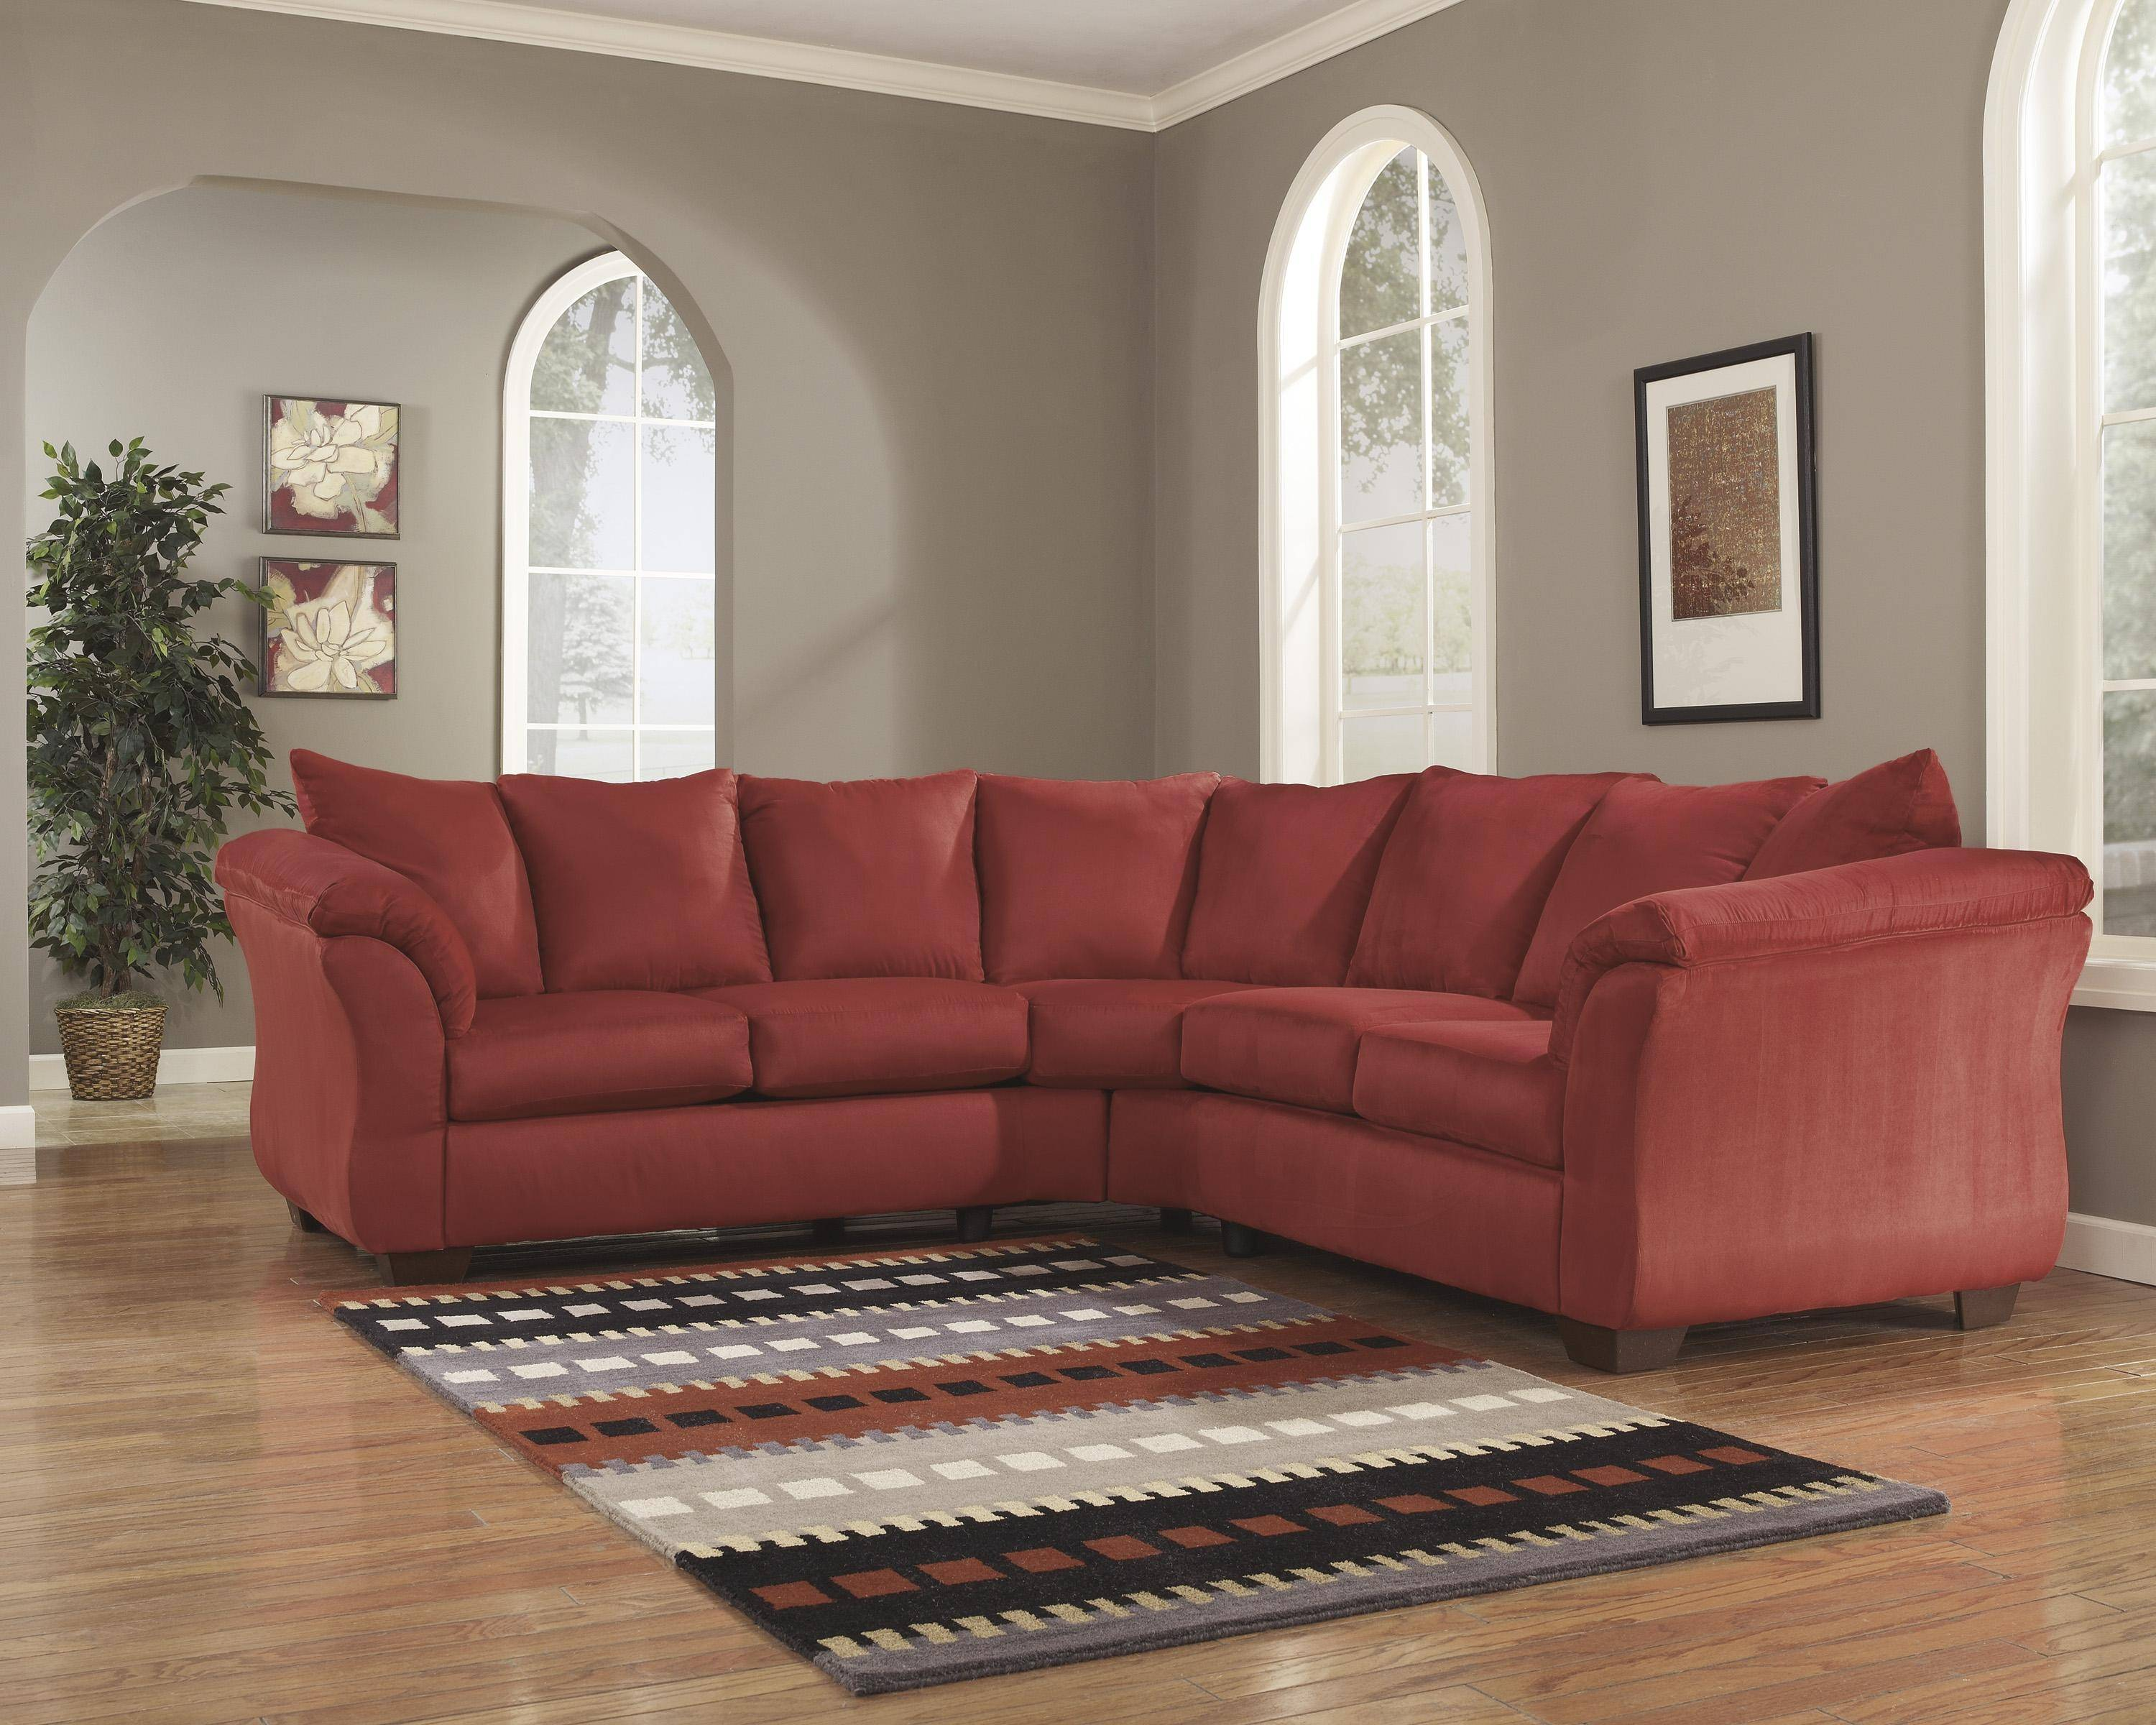 Astonishing Ashley Darcy 2 Piece Sectional In Salsa 75001 55 56 Kit Gmtry Best Dining Table And Chair Ideas Images Gmtryco